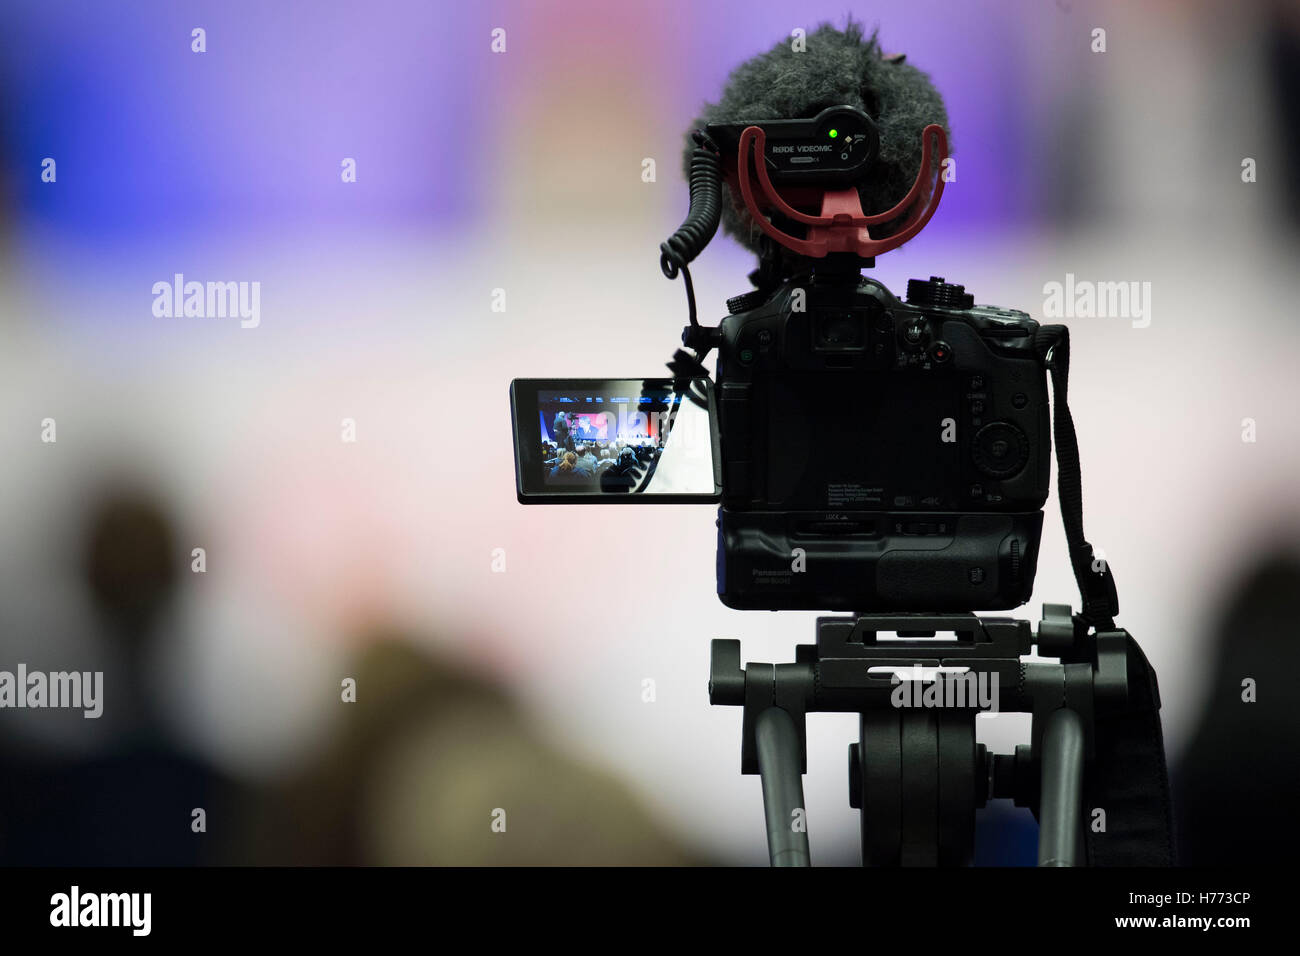 A digital slr video camera on a tripod with microphone recording video at an event - Stock Image